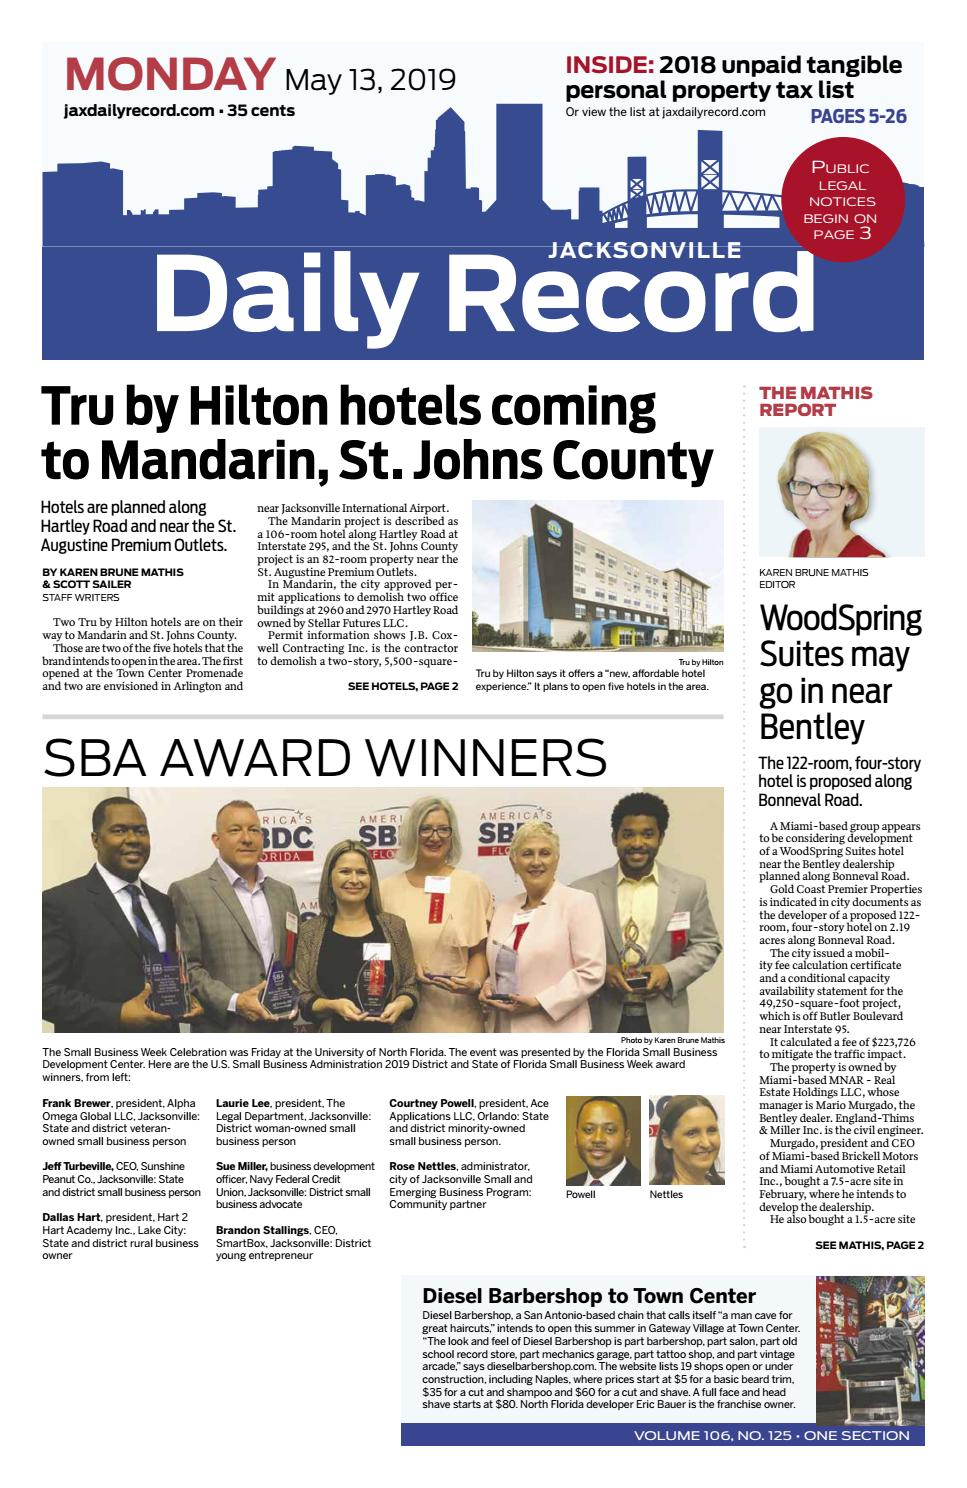 Hotel Caminetto Smartbox Jacksonville Daily Record 5 13 19 By Daily Record Observer Llc